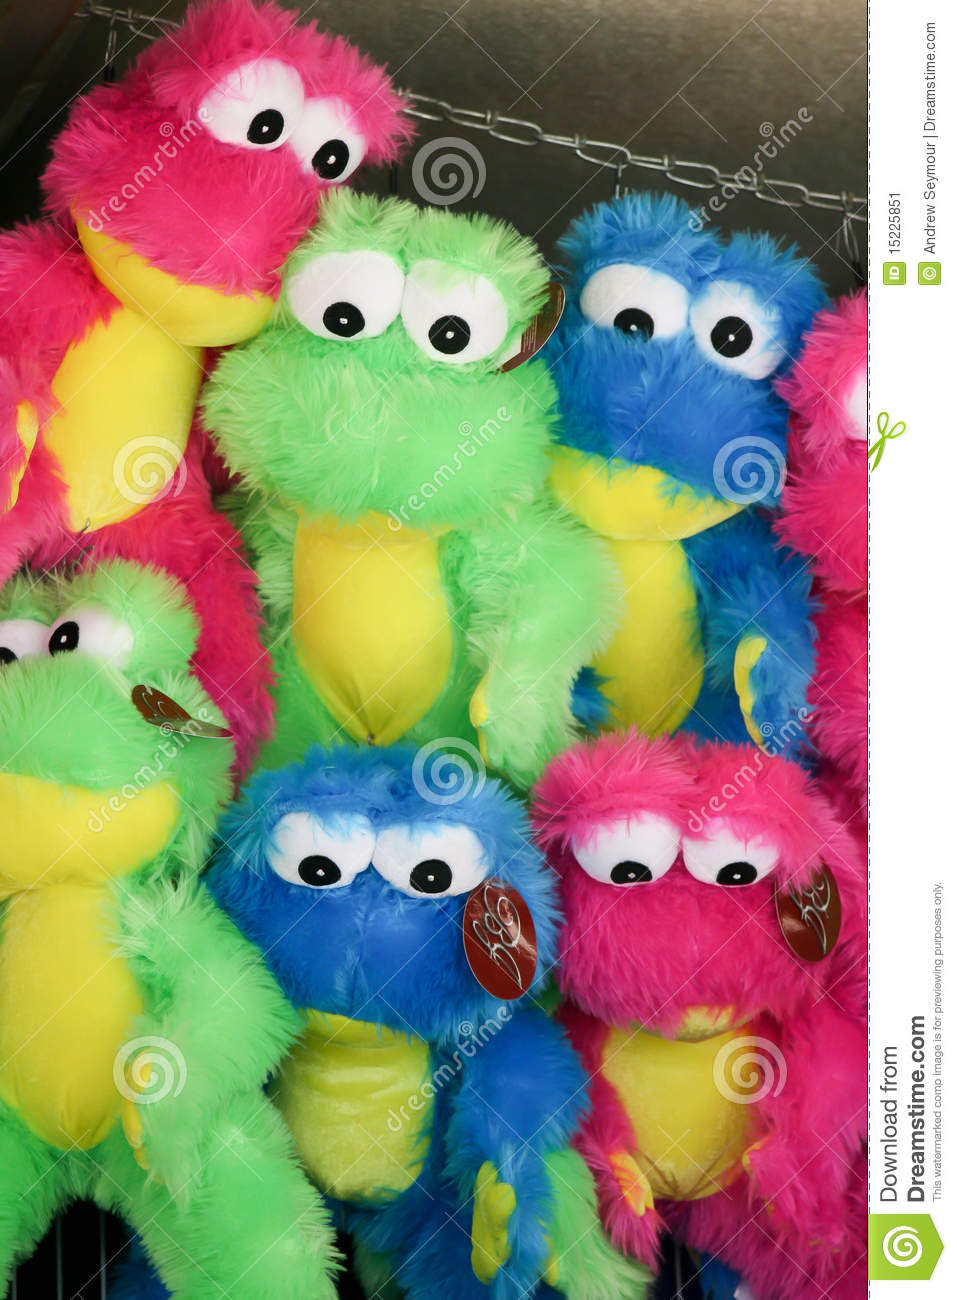 Carnival Prize Stock Image Image Of Dolls Entertainment 15225851